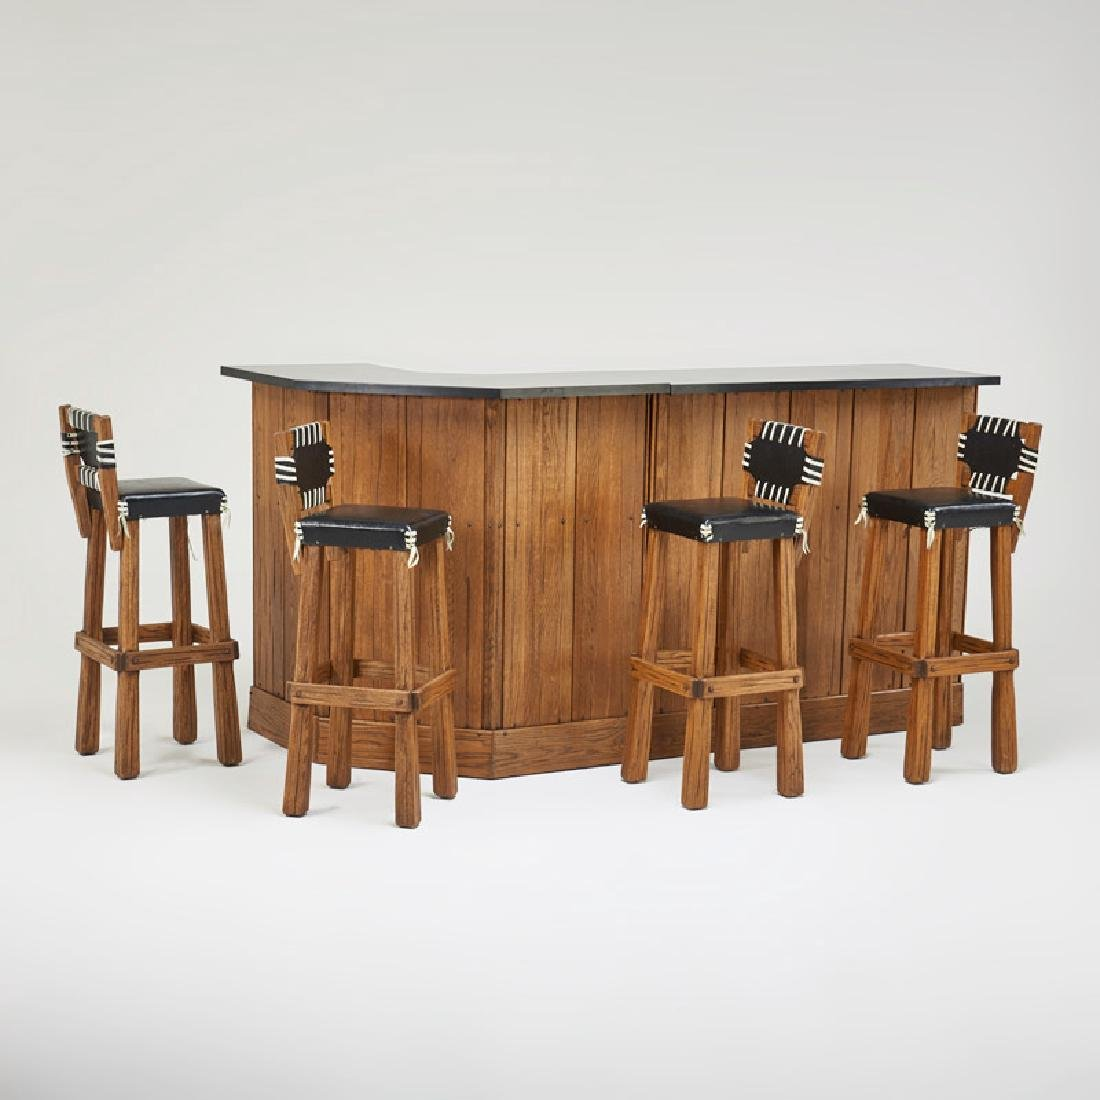 A. BRANDT; RANCH OAK FURNITURE